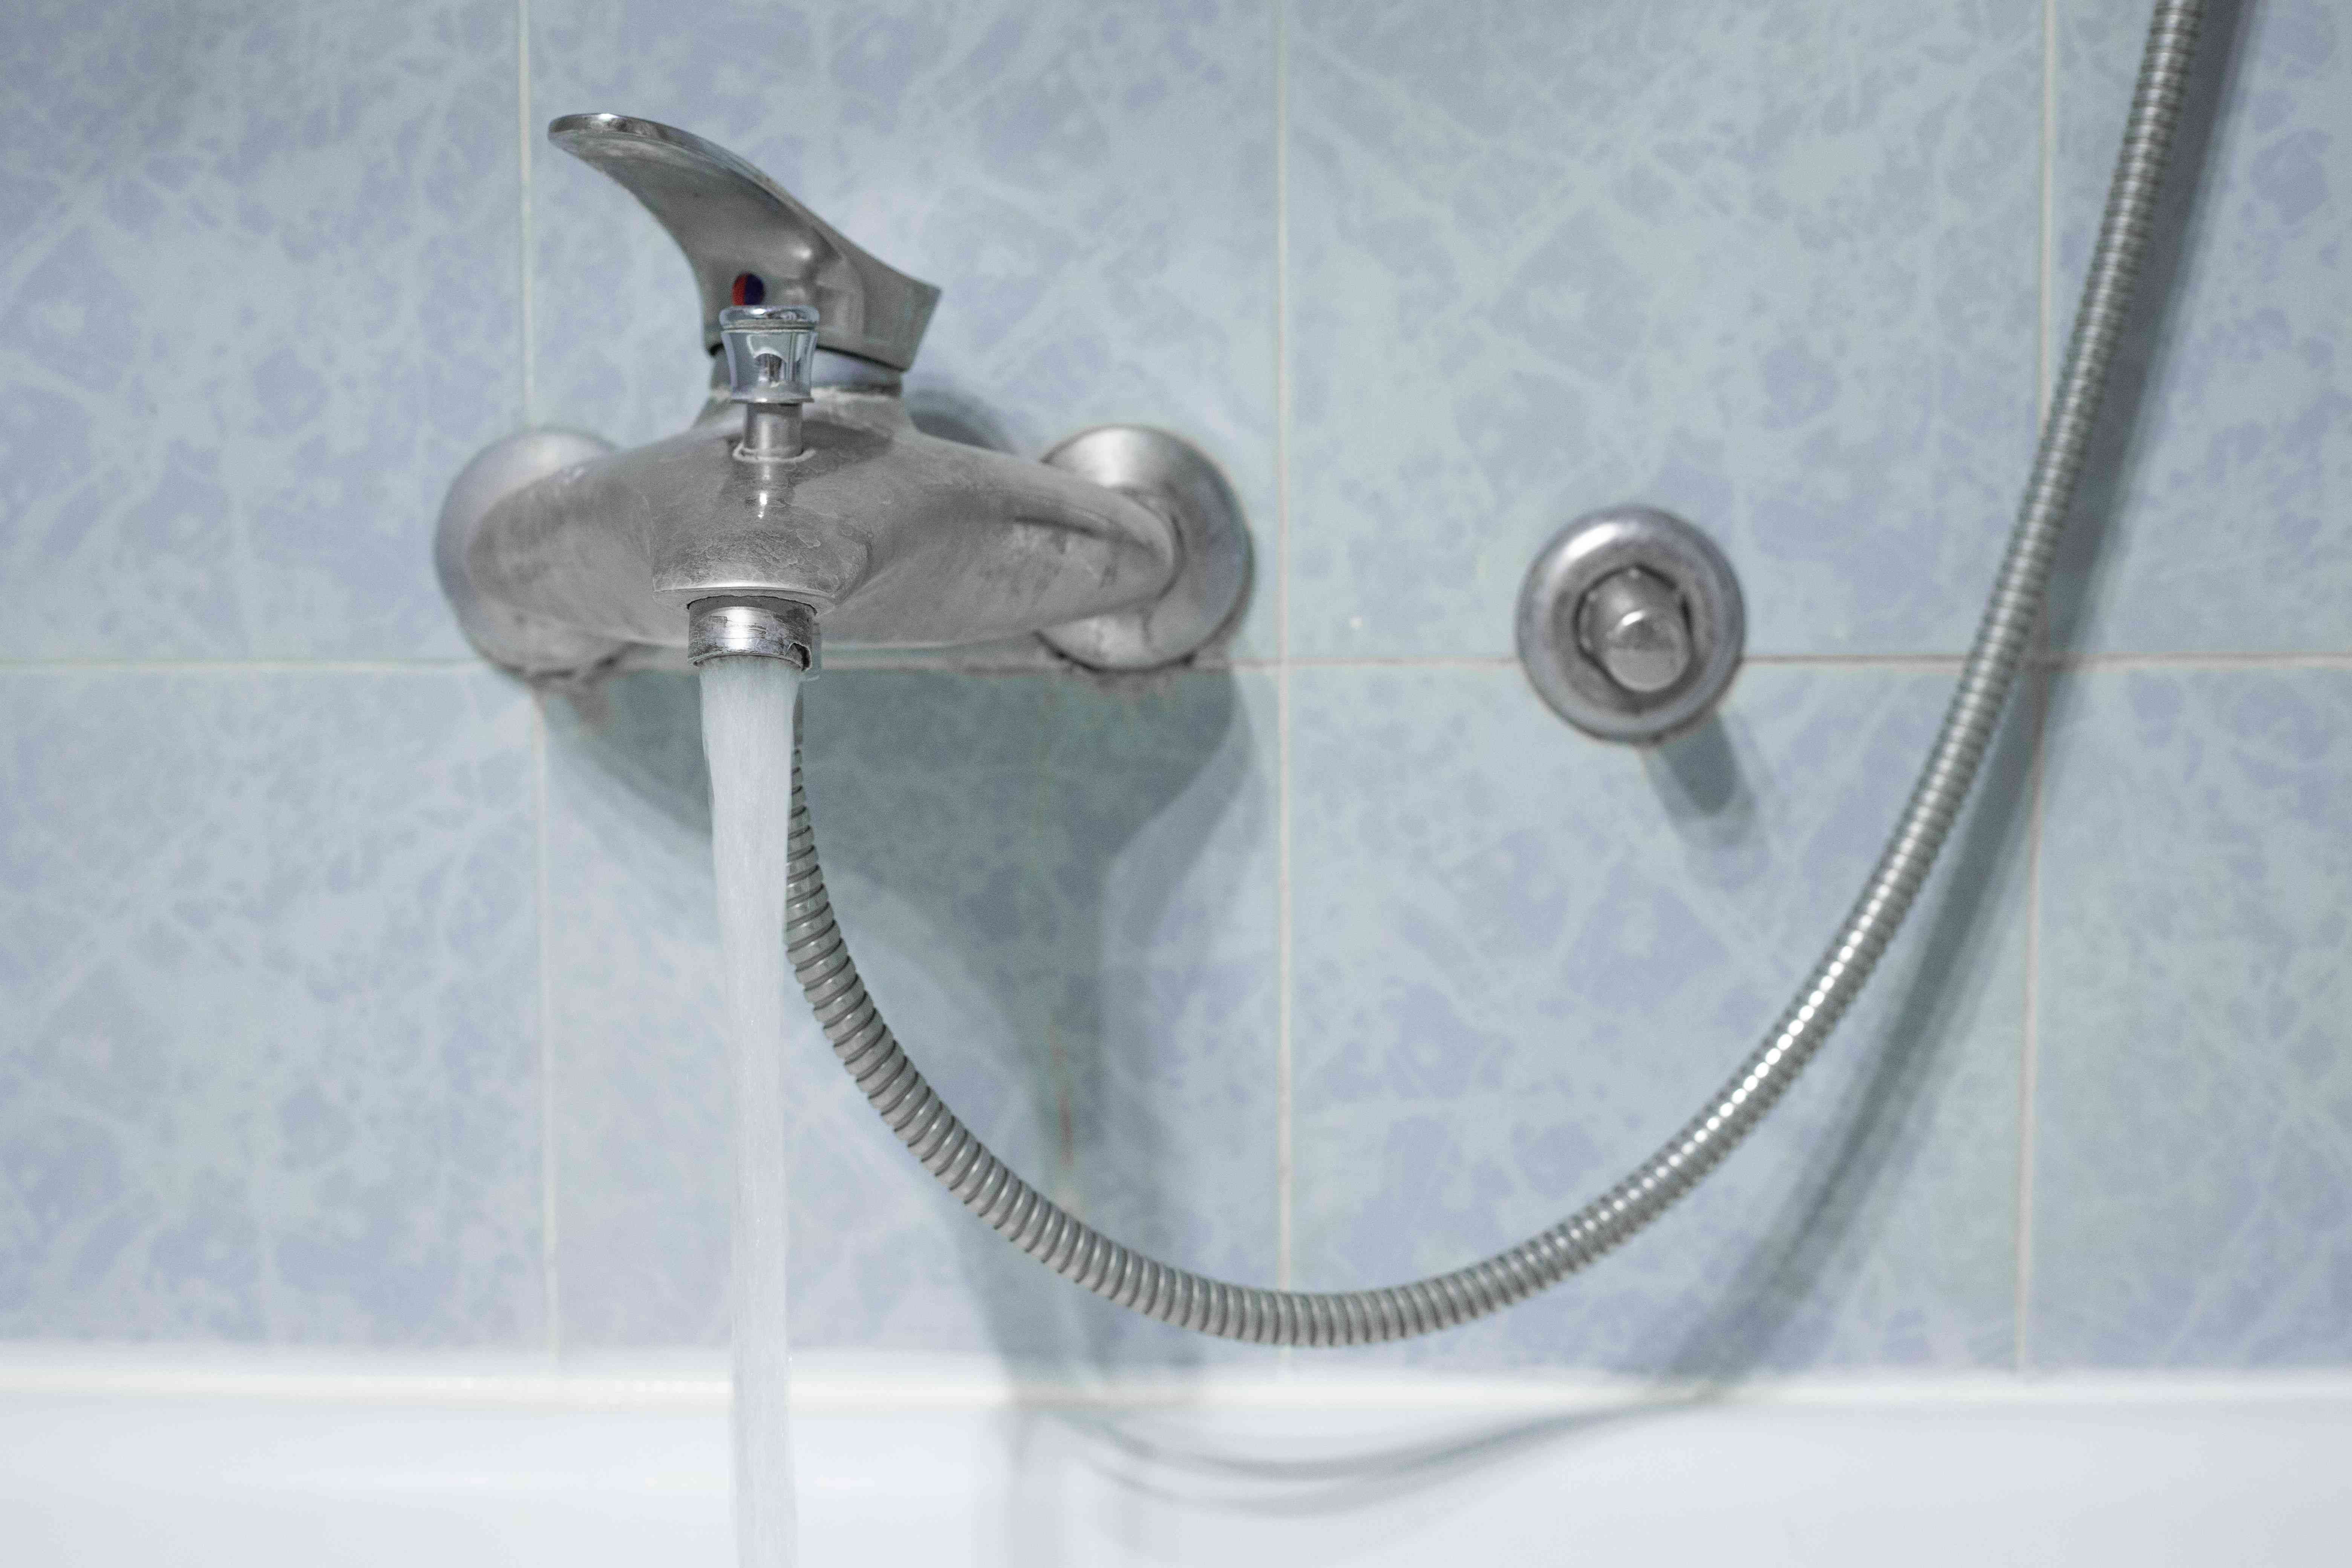 water faucet in bathtub turned on full stream with shower attachment